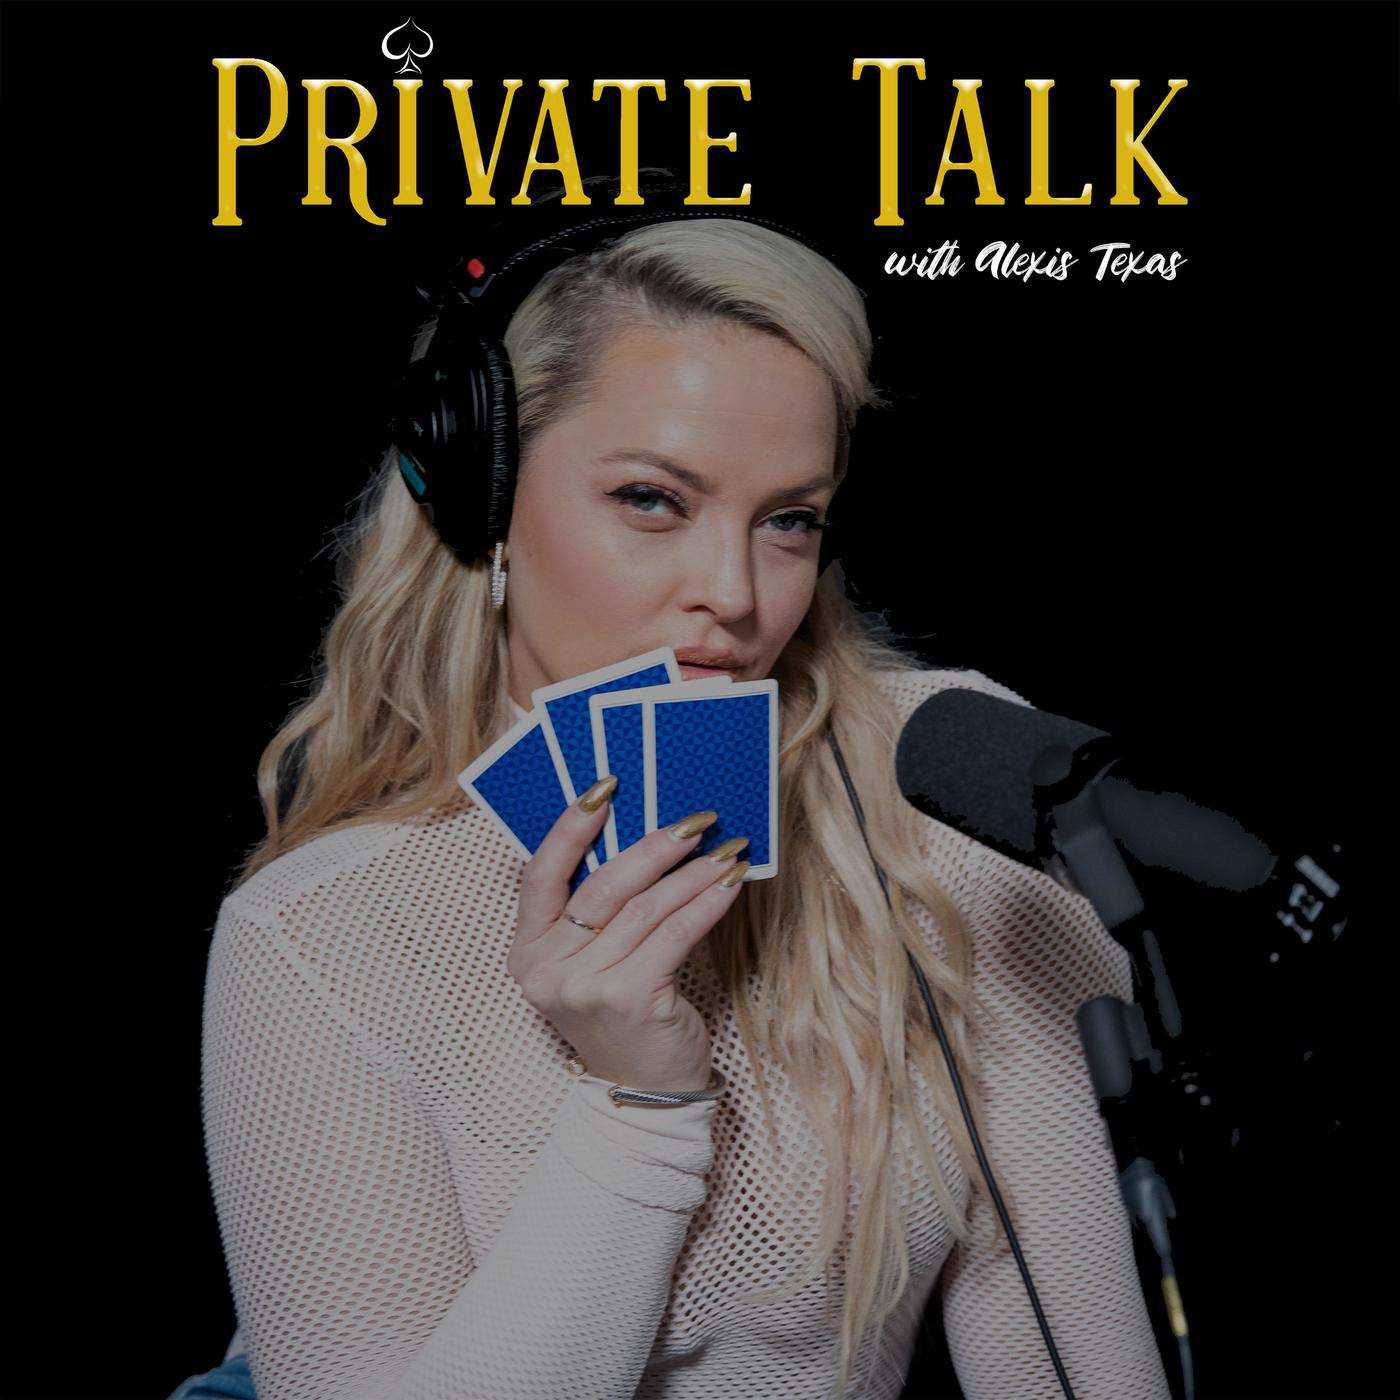 Alexis Texas Wikipedia private talk with alexis texas (podcast) - fred frenchy